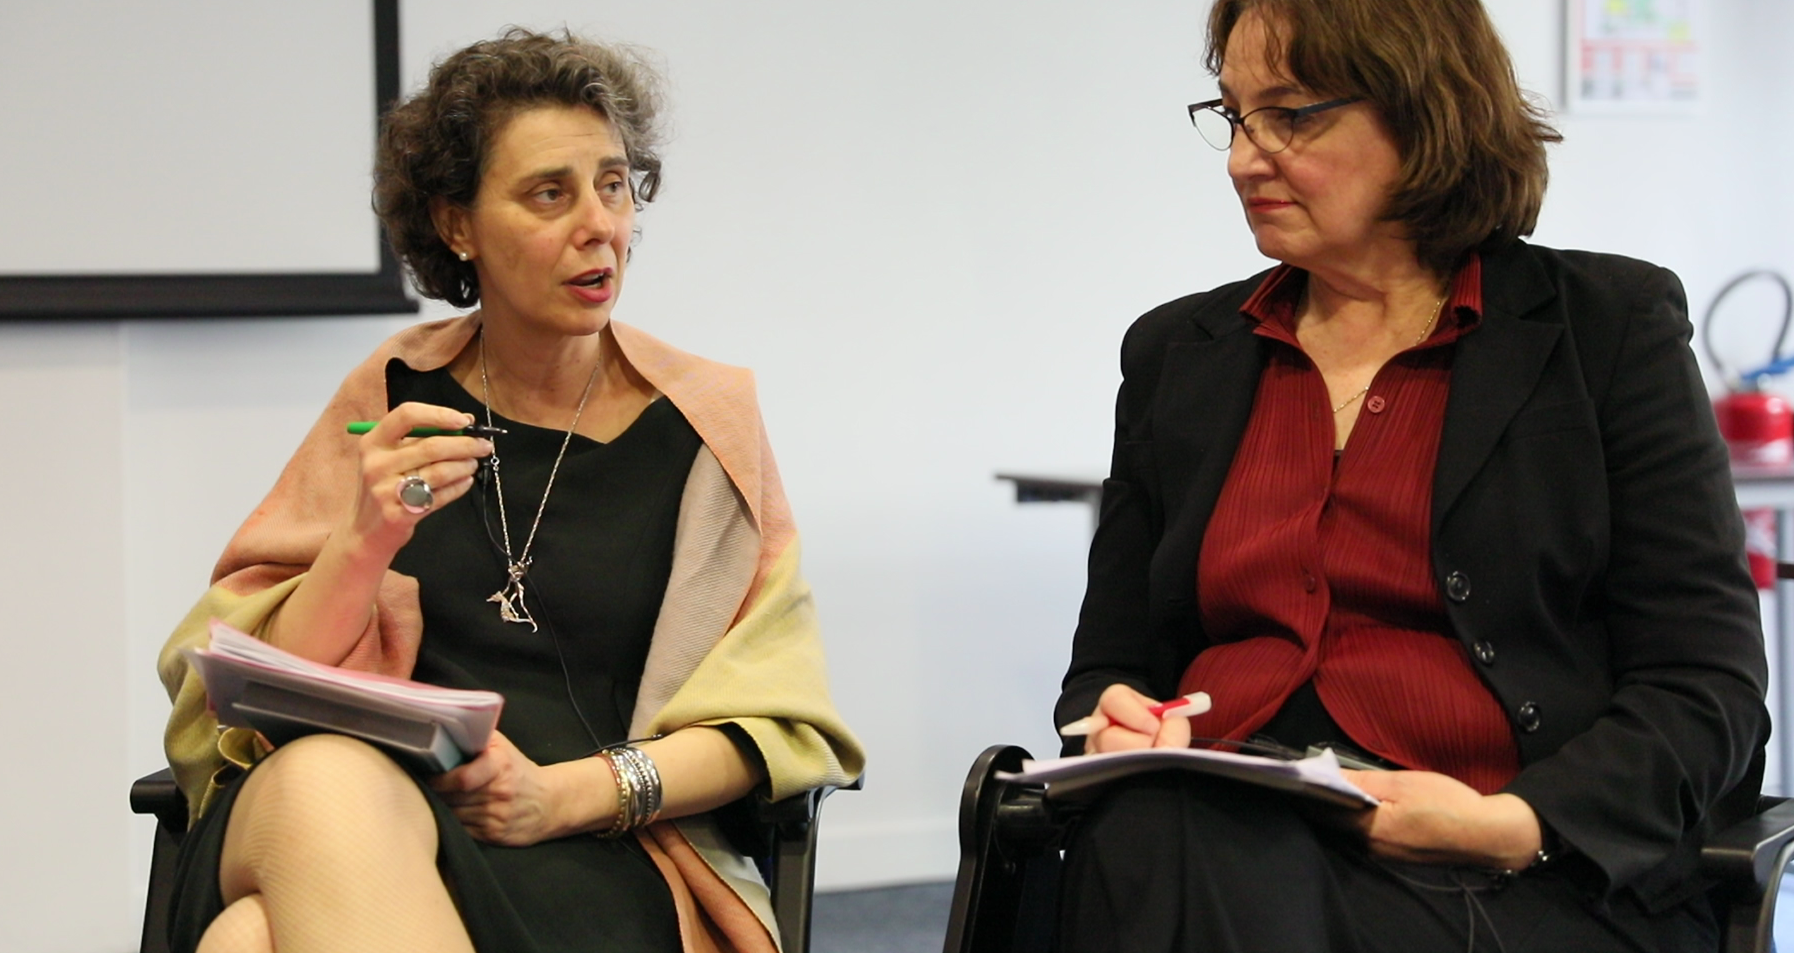 Photo of Maria-Varinia Michalun, Policy Analyst and Project Manager at the OECD and Janet Looney, Director of the European Institute of Education and Social Policy